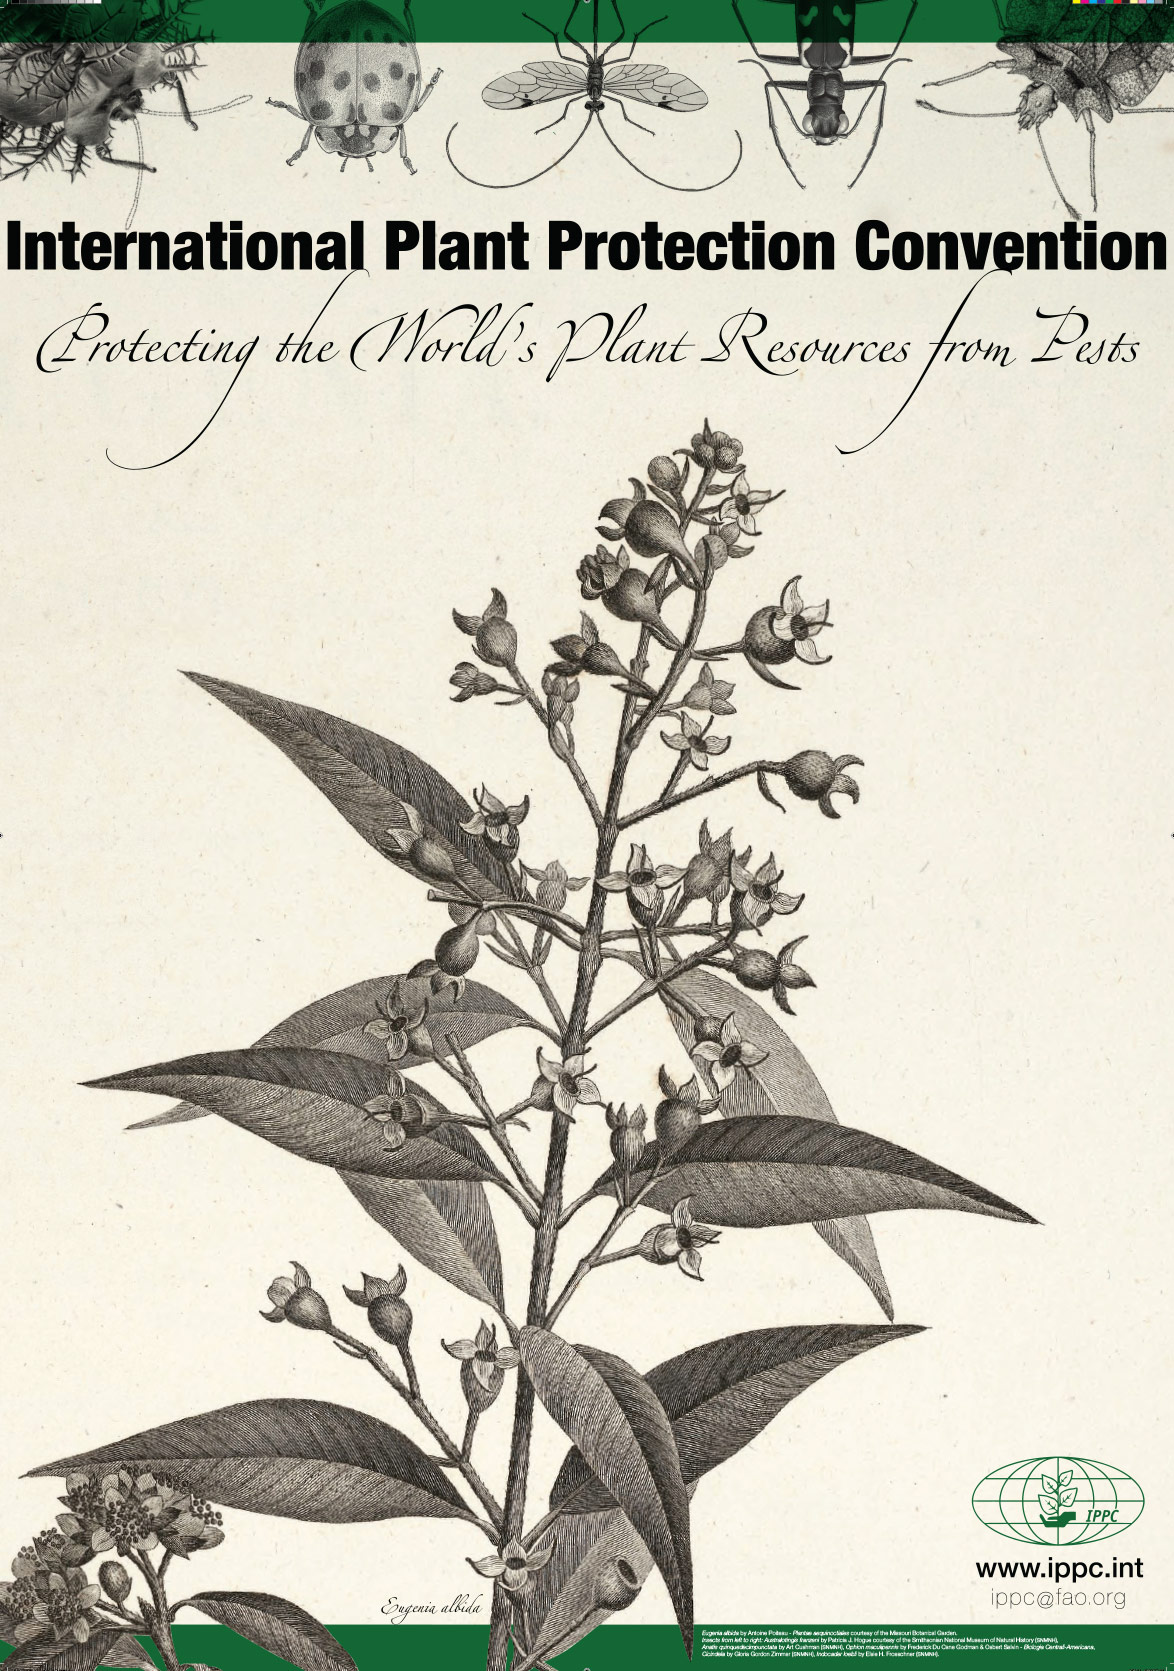 A poster design for the International Plant Protection Convention.